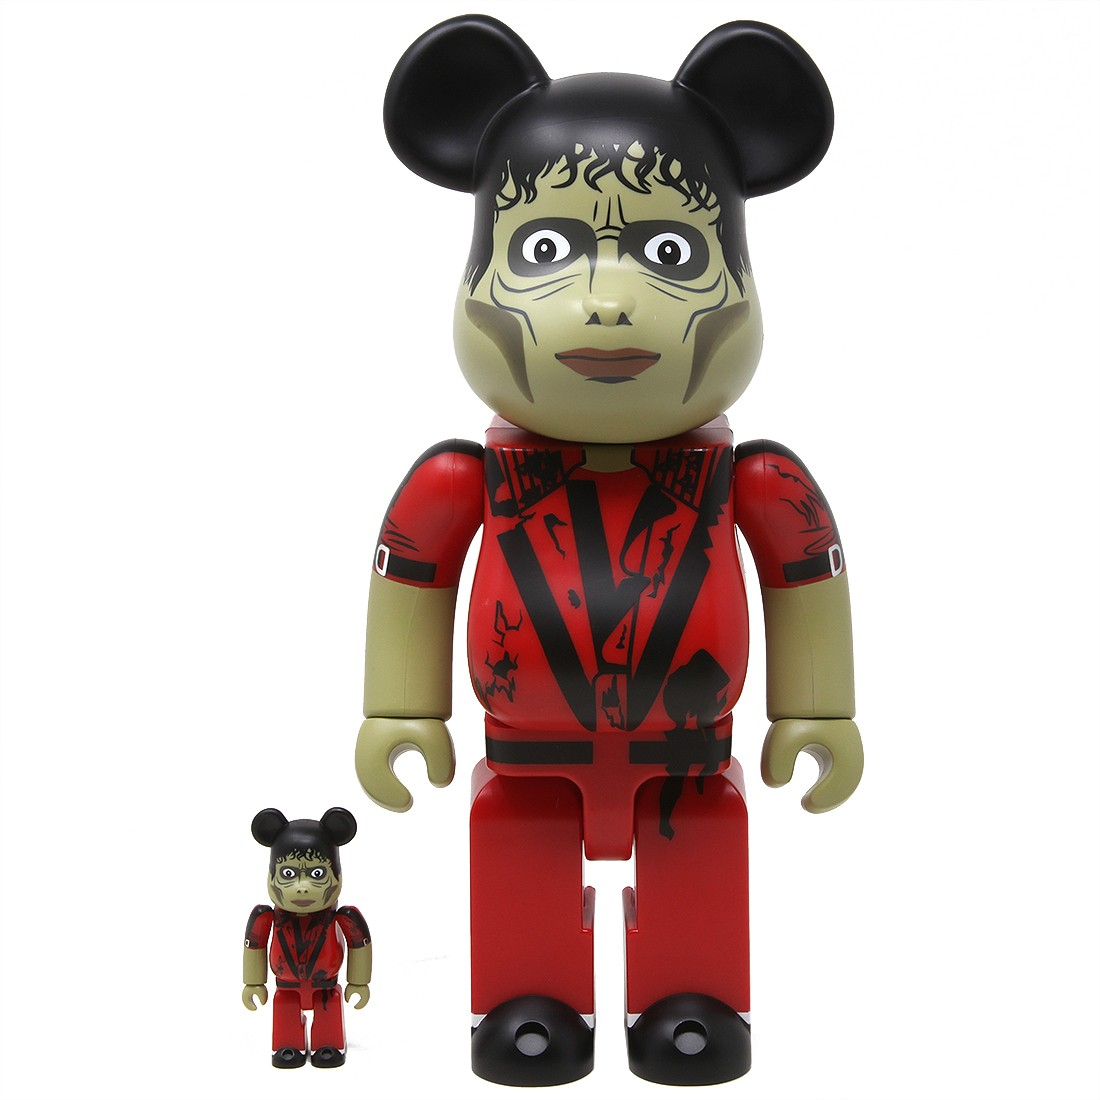 Medicom Michael Jackson Thriller Zombie 100% 400% Figure Set (red)